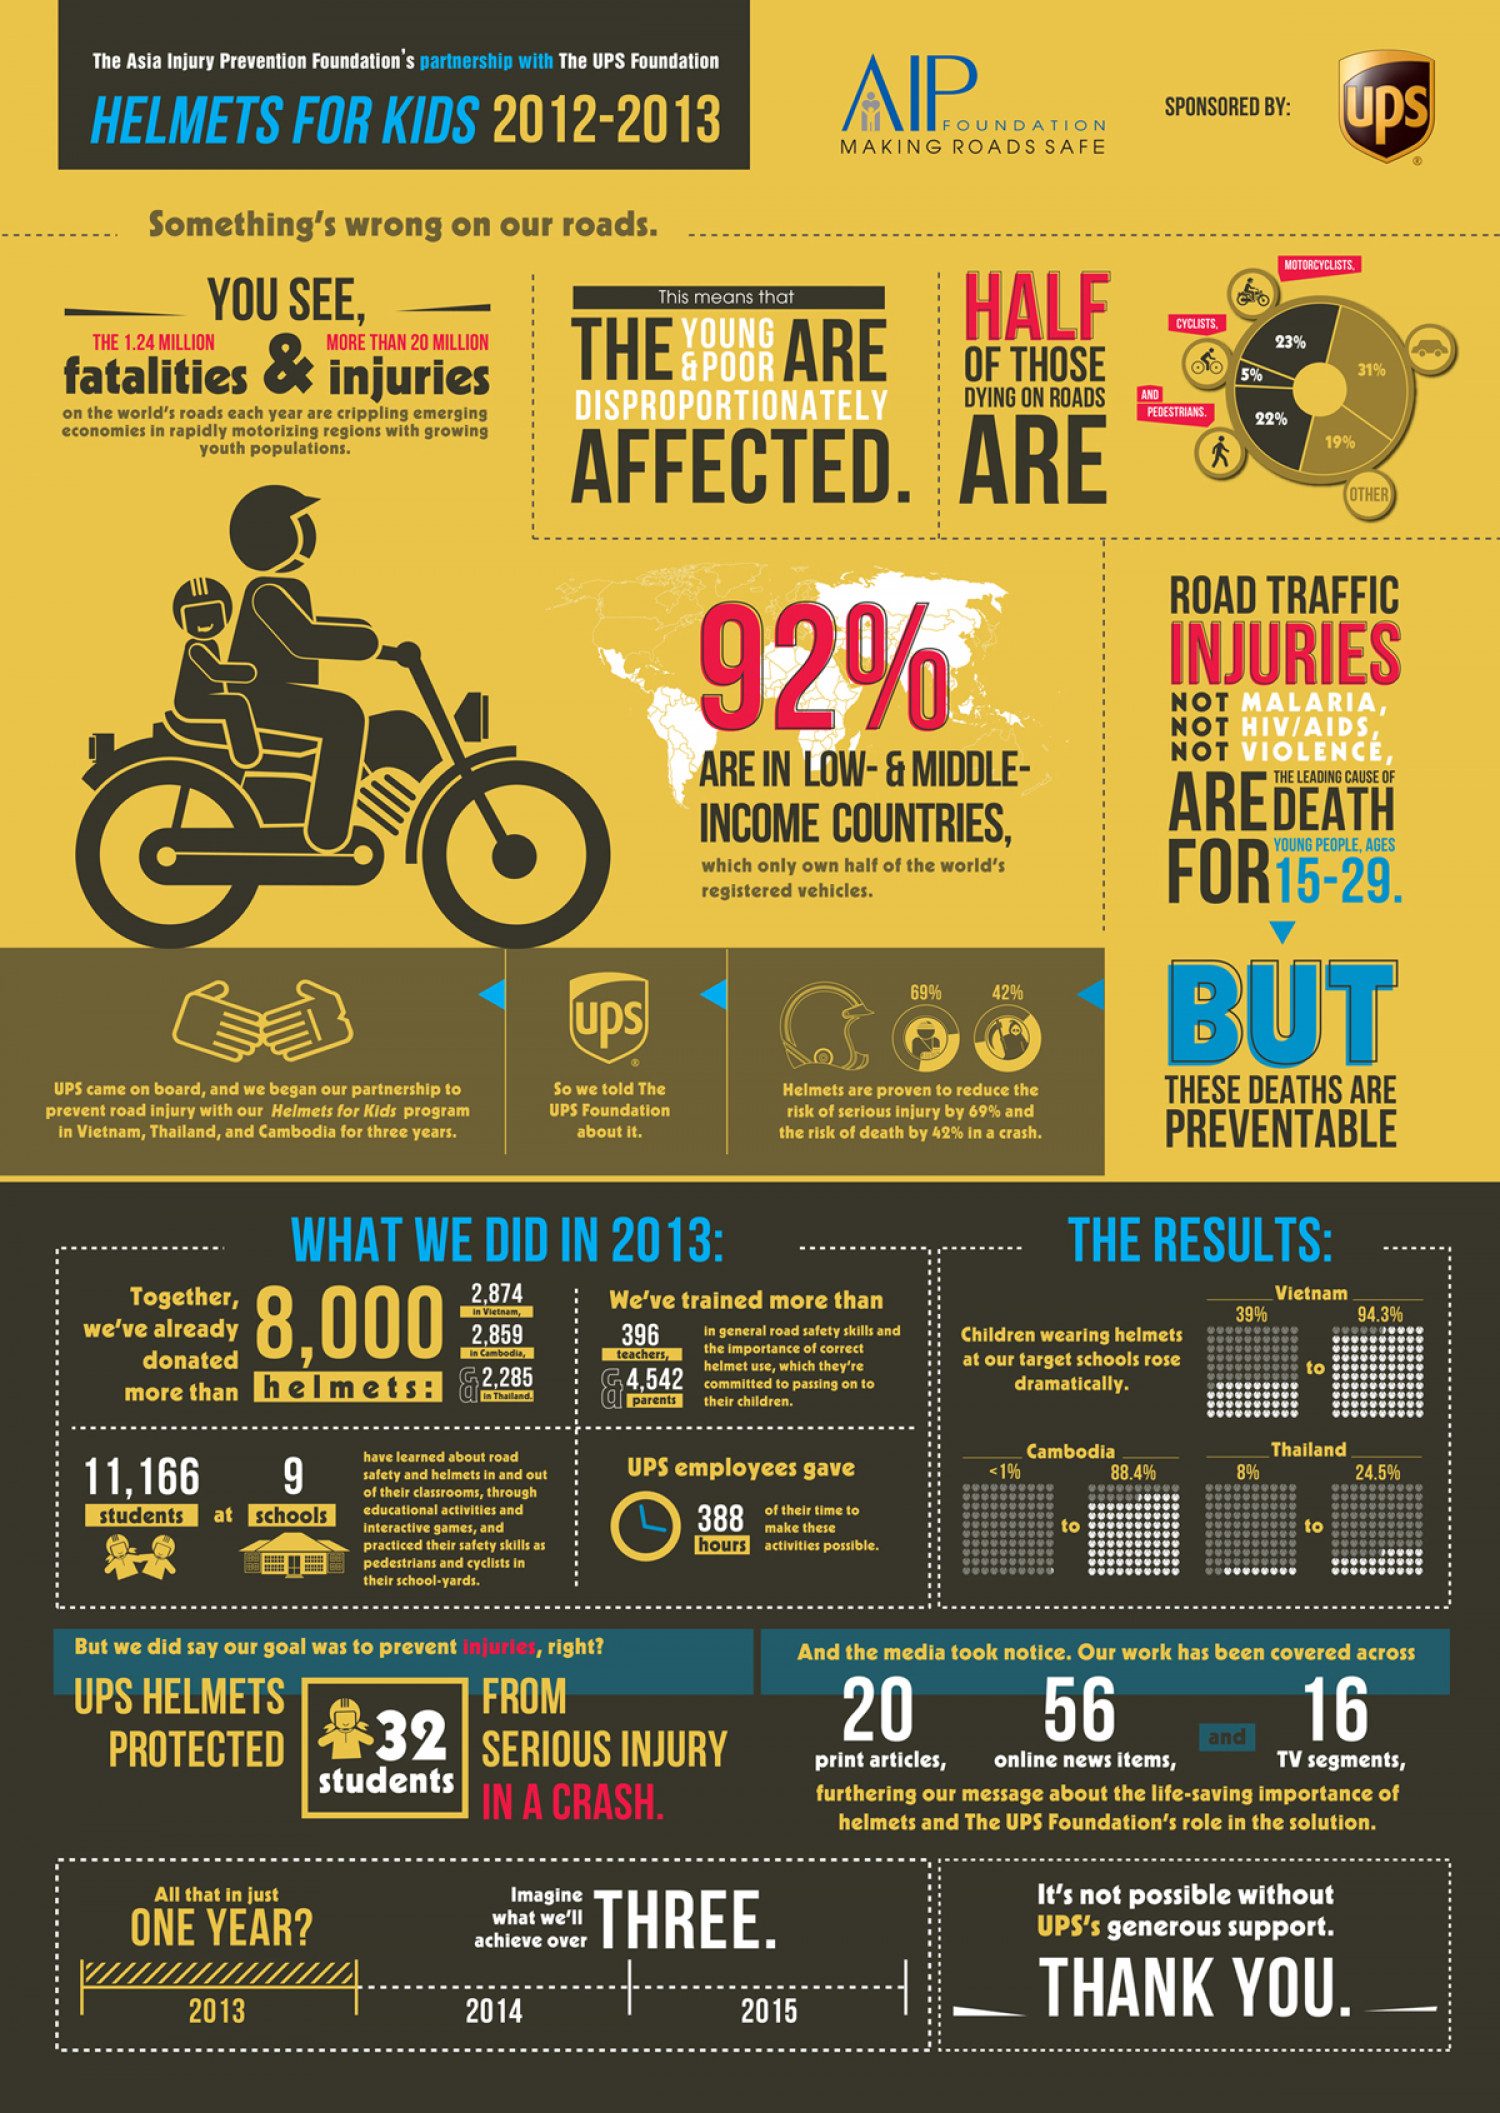 Helmets for Kids Infographic